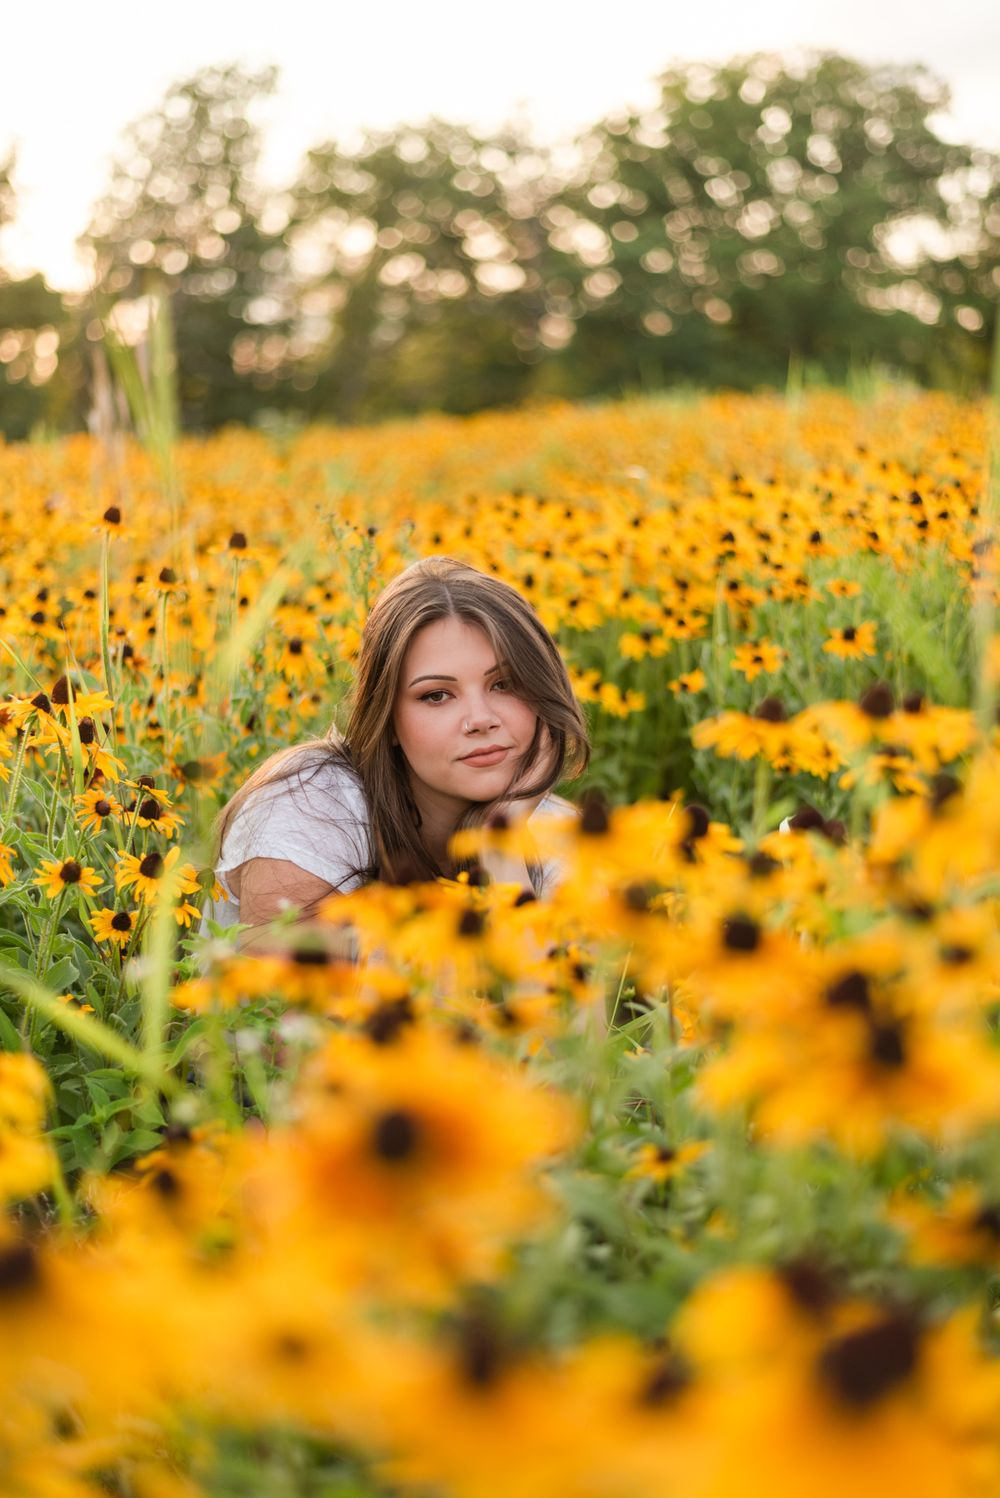 Girl sitting in sunflower patch in golden sunlight at Hartwood Acres in Pittsburgh Pennsylvania